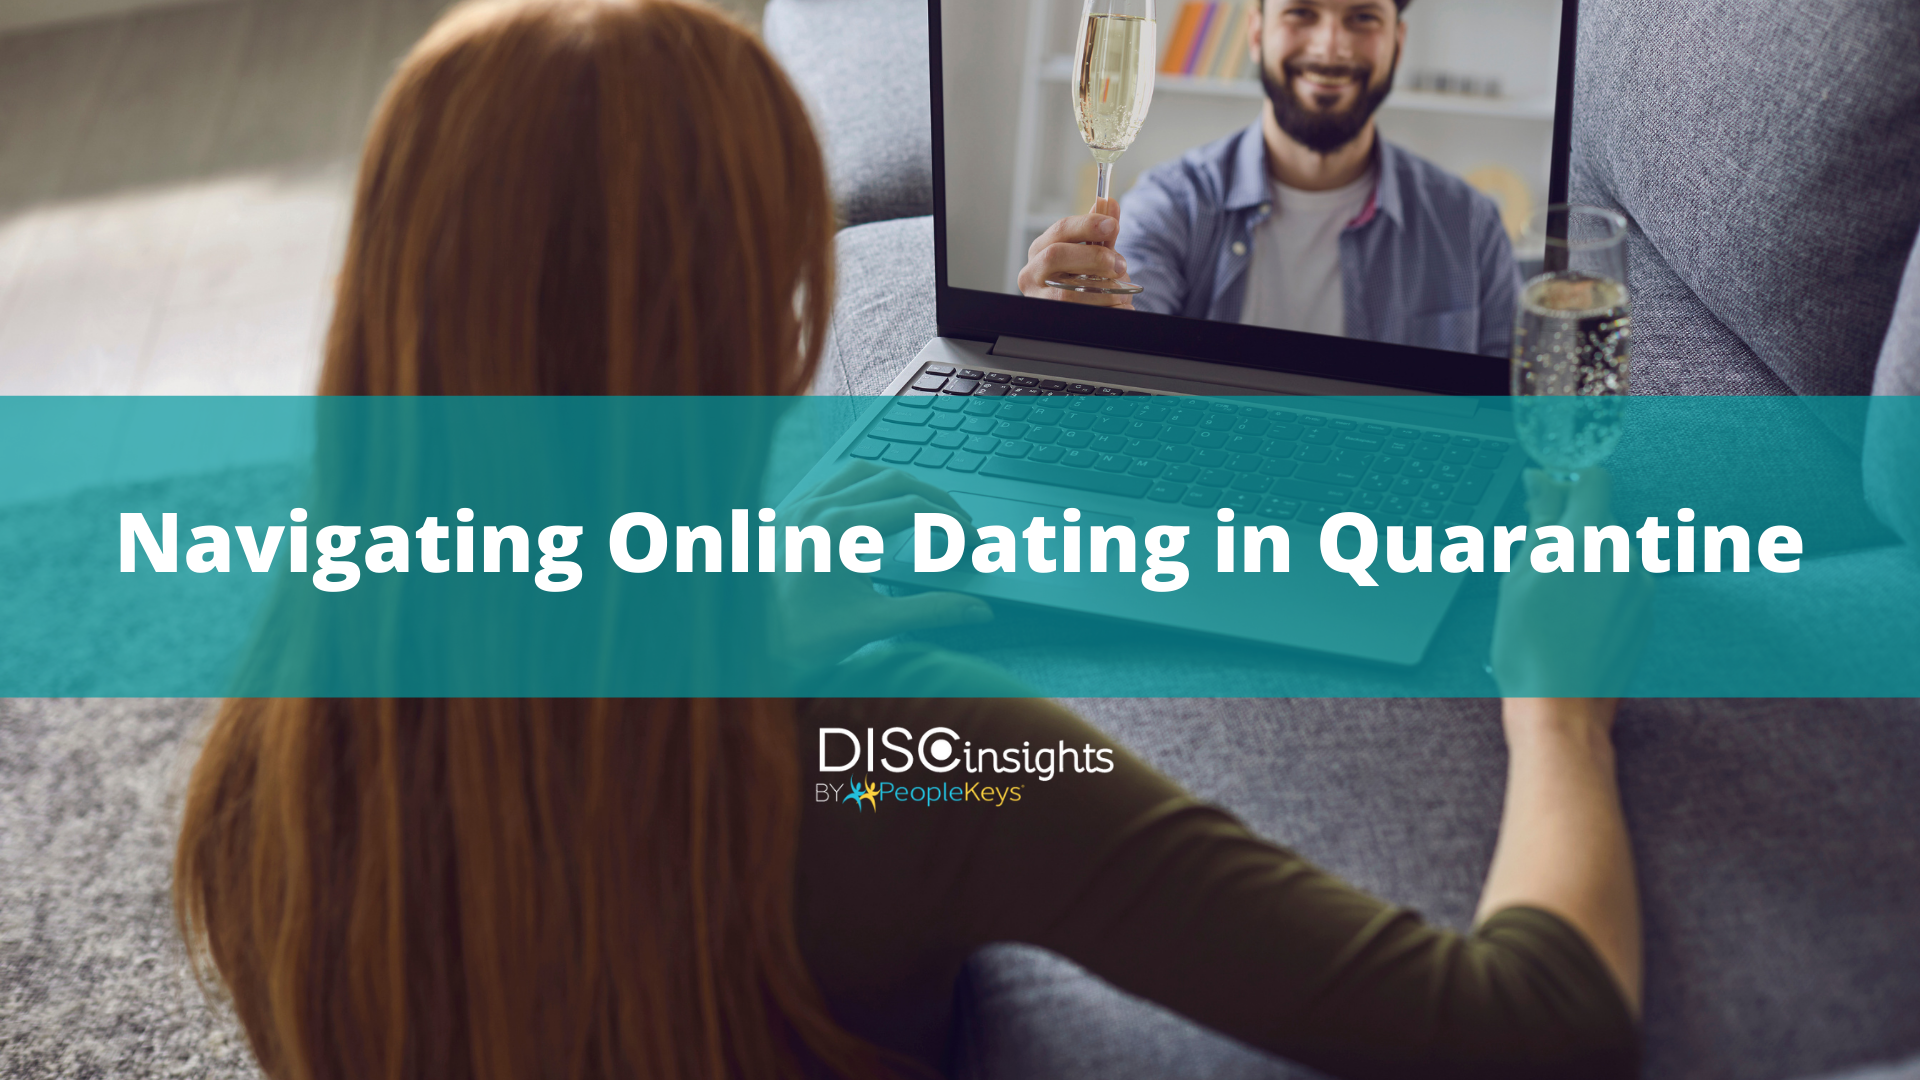 Navigating Online Dating in Quarantine